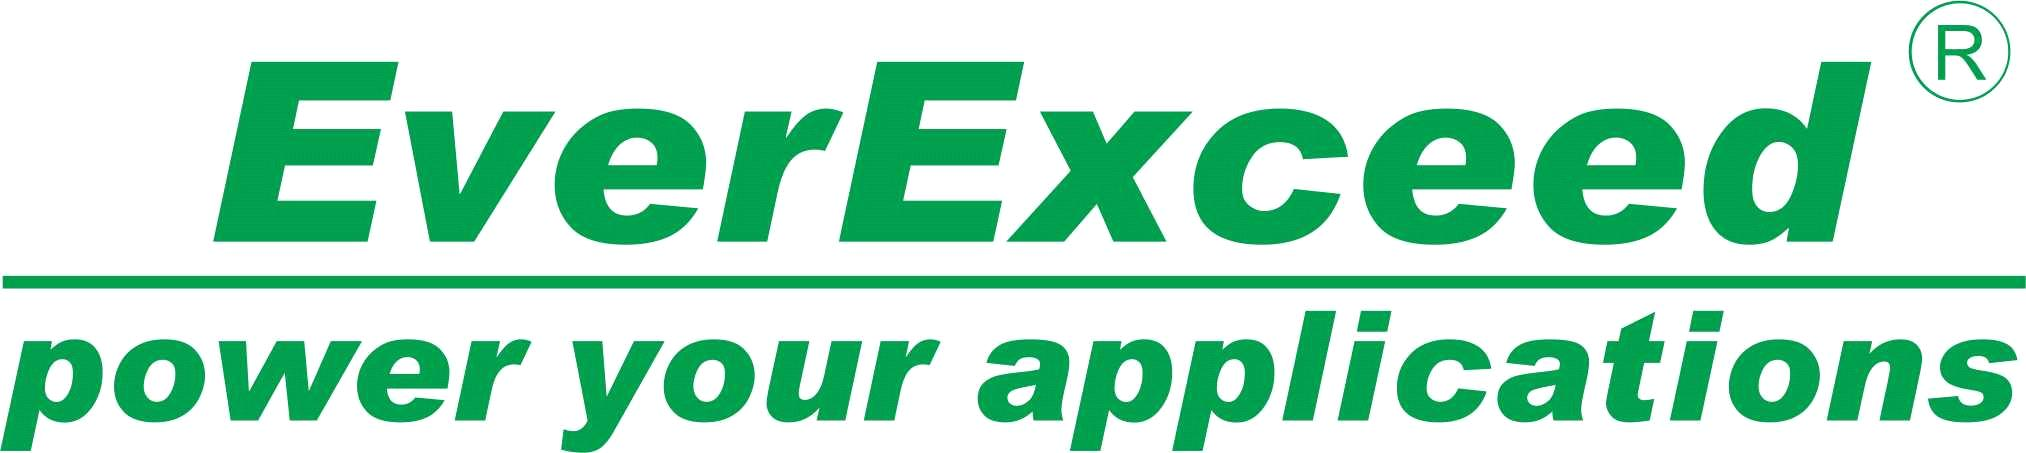 EverExceed Industrial Co., Ltd.